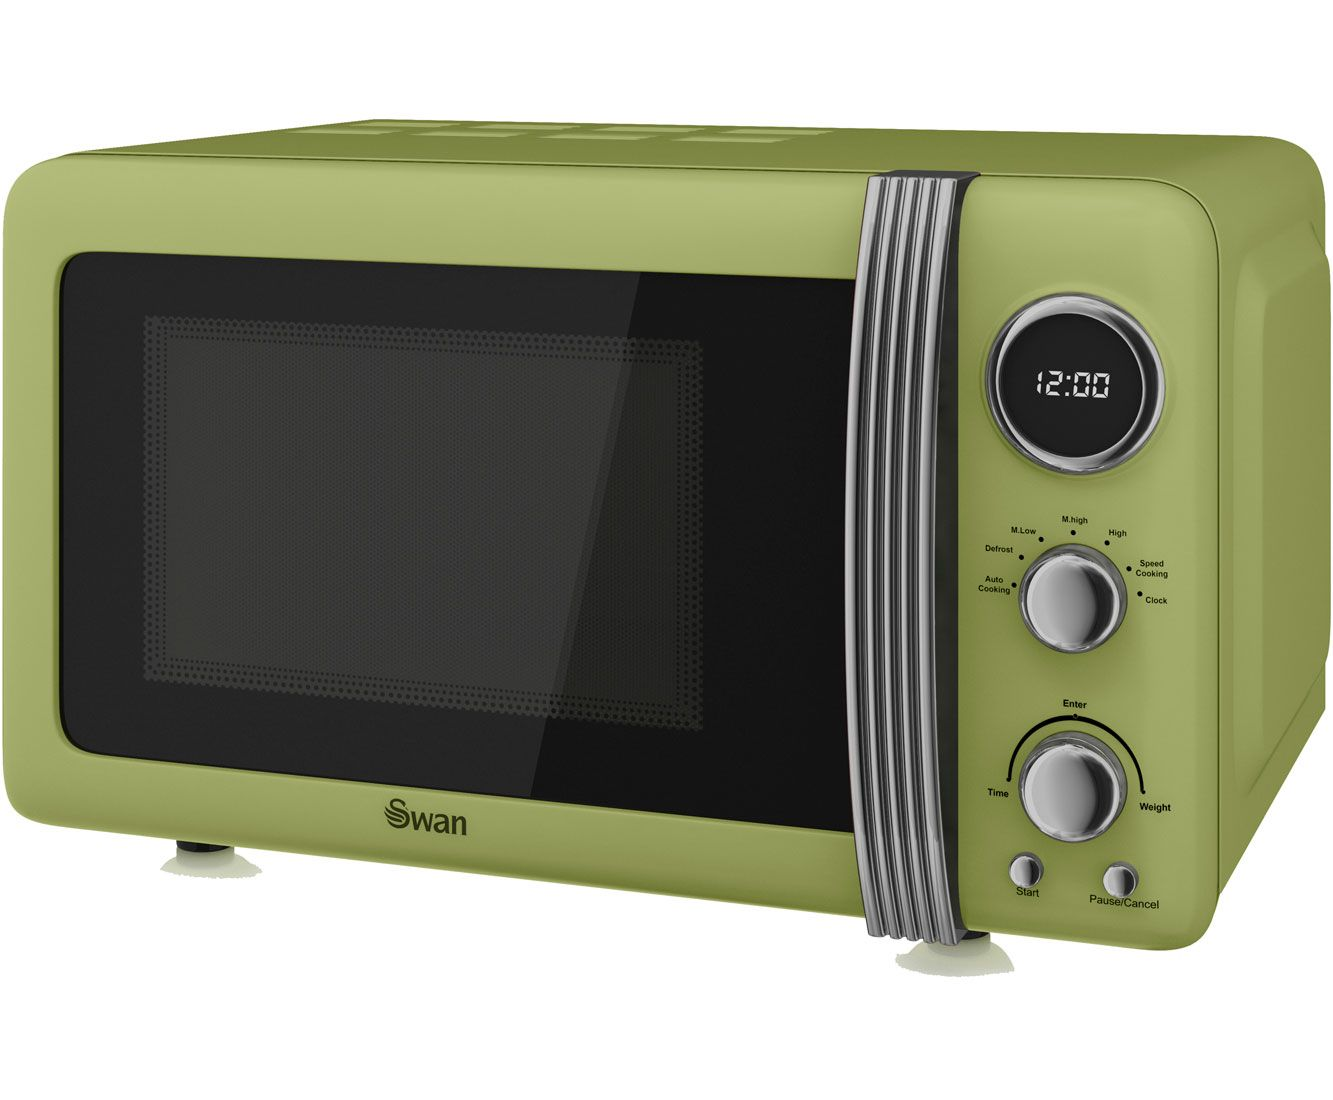 Swan Retro Sm22030gn Freestanding Microwave Green